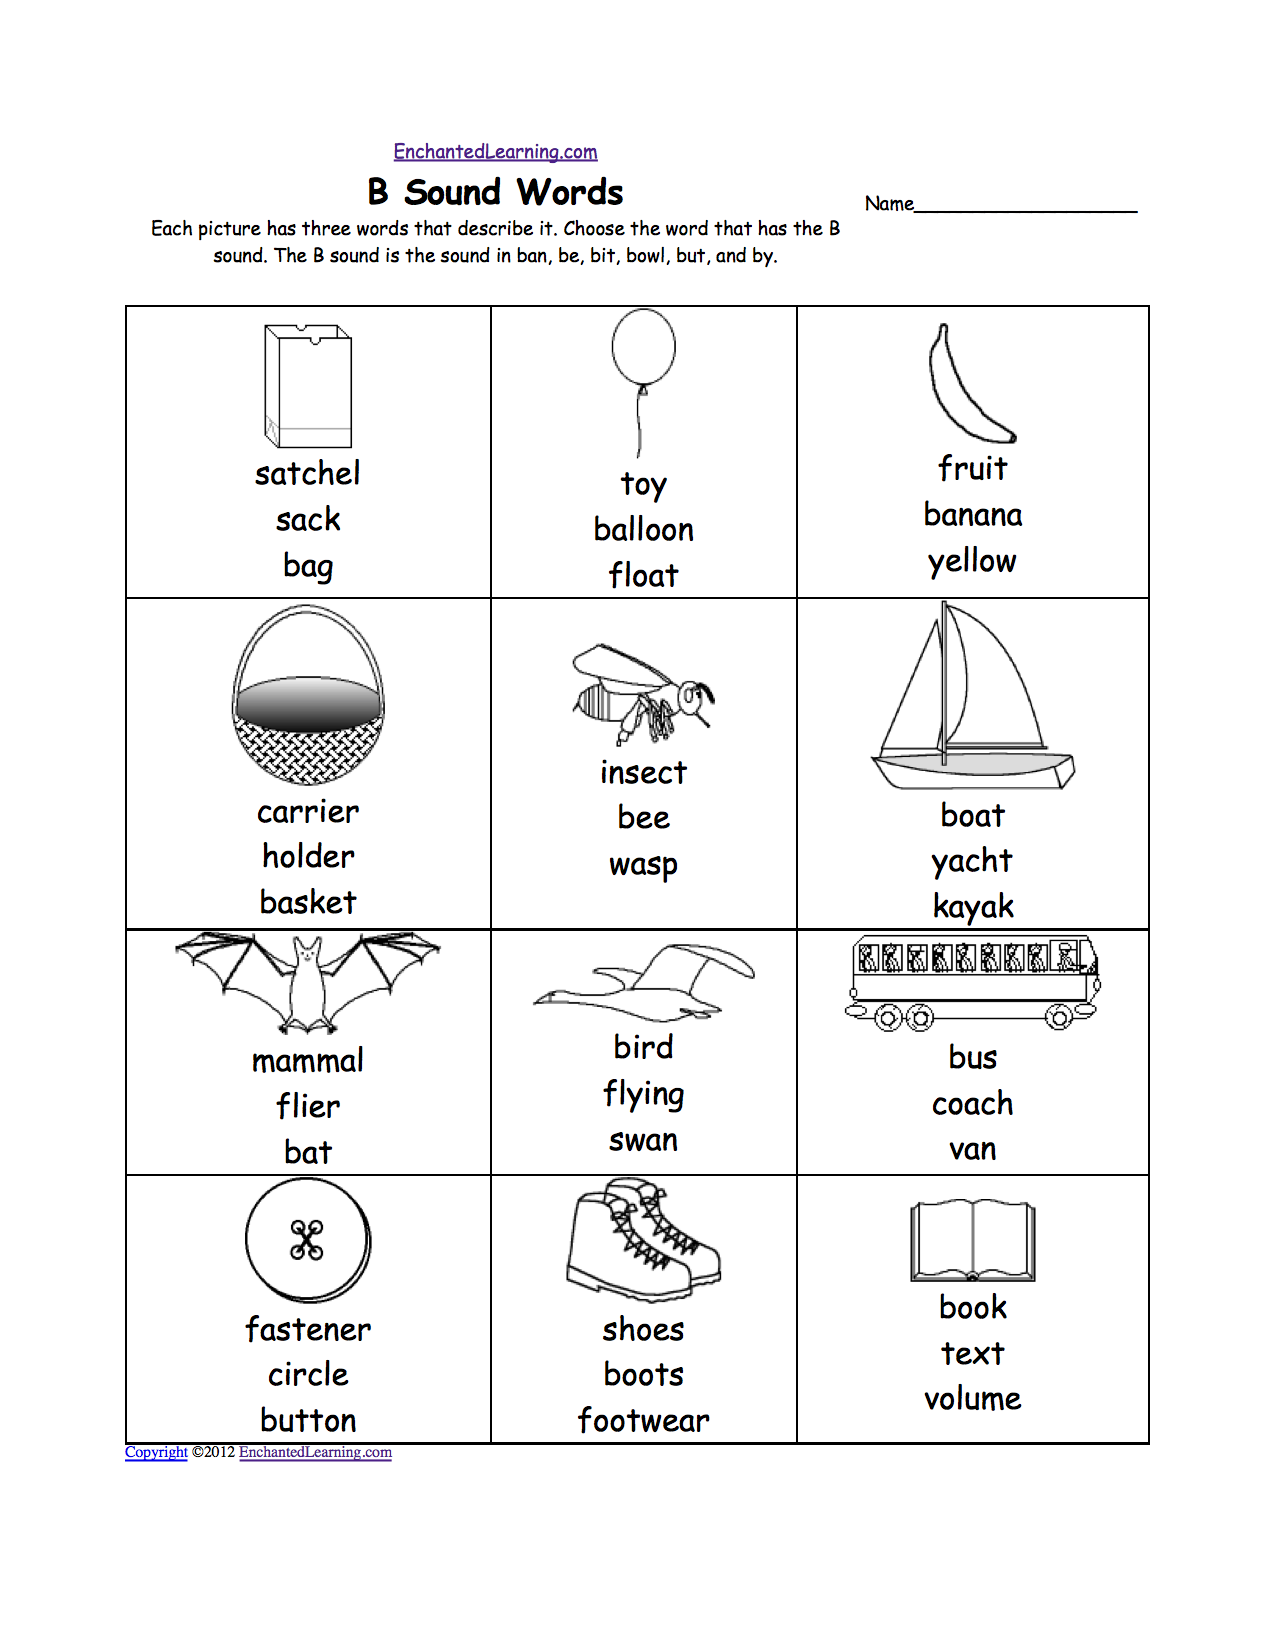 Aldiablosus  Remarkable Phonics Worksheets Multiple Choice Worksheets To Print  With Gorgeous Quotbquot Sound Phonics Worksheet Multiple Choice Each Picture Has Three Words That Describe It Choose The Word That Has A Quotbquot Sound The Quotbquot Sound Is The Sound  With Delightful Excel Worksheet Properties Also Long Division Practice Worksheets Th Grade In Addition Native Americans Worksheets And Free First Grade Math Worksheets Printable As Well As Good Character Worksheets Additionally Fast Finishers Worksheets From Enchantedlearningcom With Aldiablosus  Gorgeous Phonics Worksheets Multiple Choice Worksheets To Print  With Delightful Quotbquot Sound Phonics Worksheet Multiple Choice Each Picture Has Three Words That Describe It Choose The Word That Has A Quotbquot Sound The Quotbquot Sound Is The Sound  And Remarkable Excel Worksheet Properties Also Long Division Practice Worksheets Th Grade In Addition Native Americans Worksheets From Enchantedlearningcom